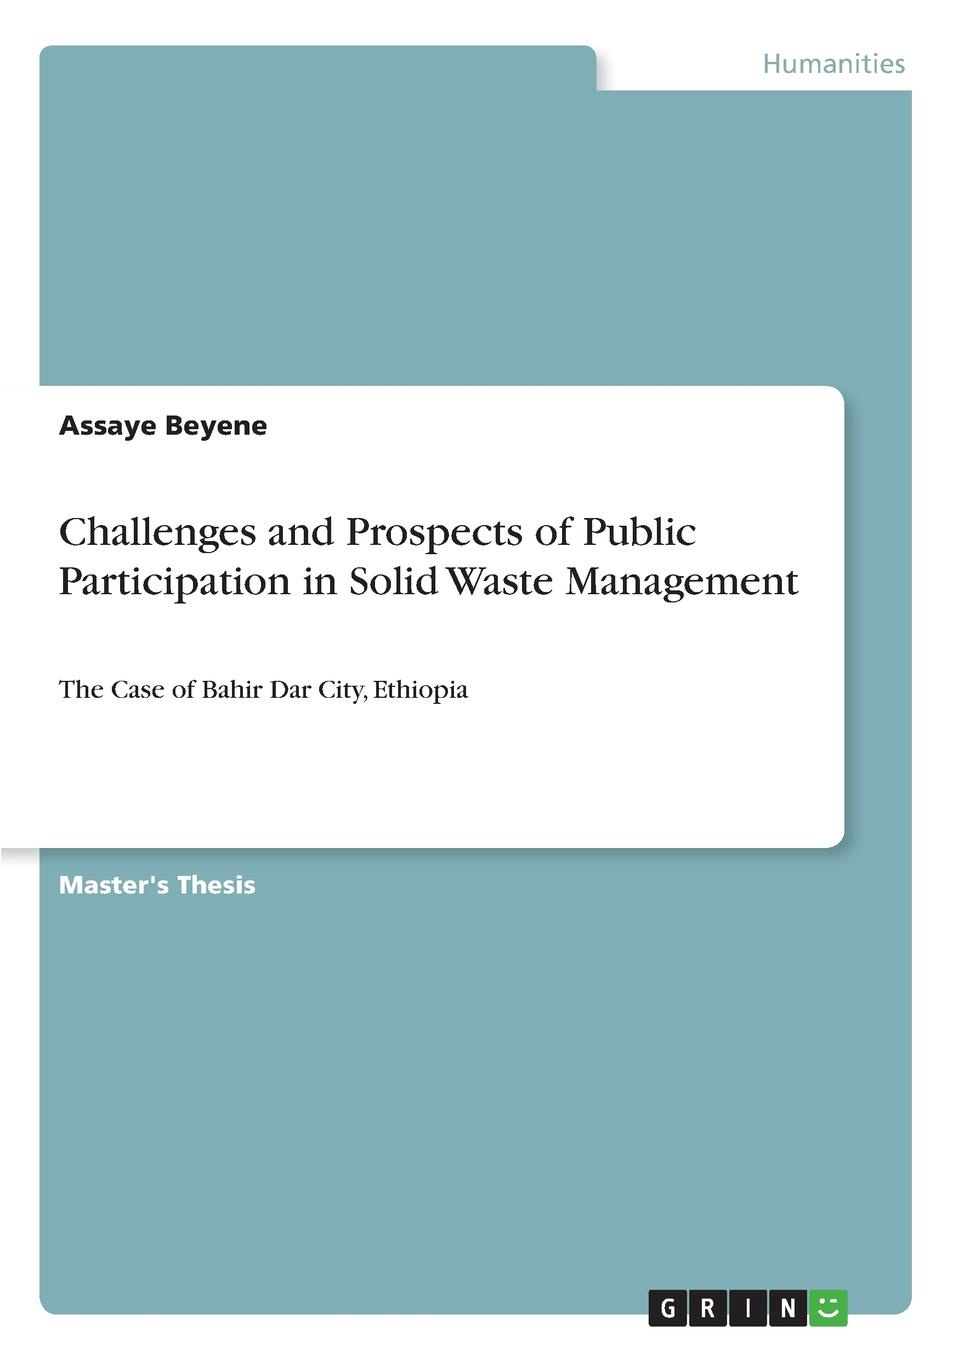 Assaye Beyene Challenges and Prospects of Public Participation in Solid Waste Management kevin henke arsenic environmental chemistry health threats and waste treatment